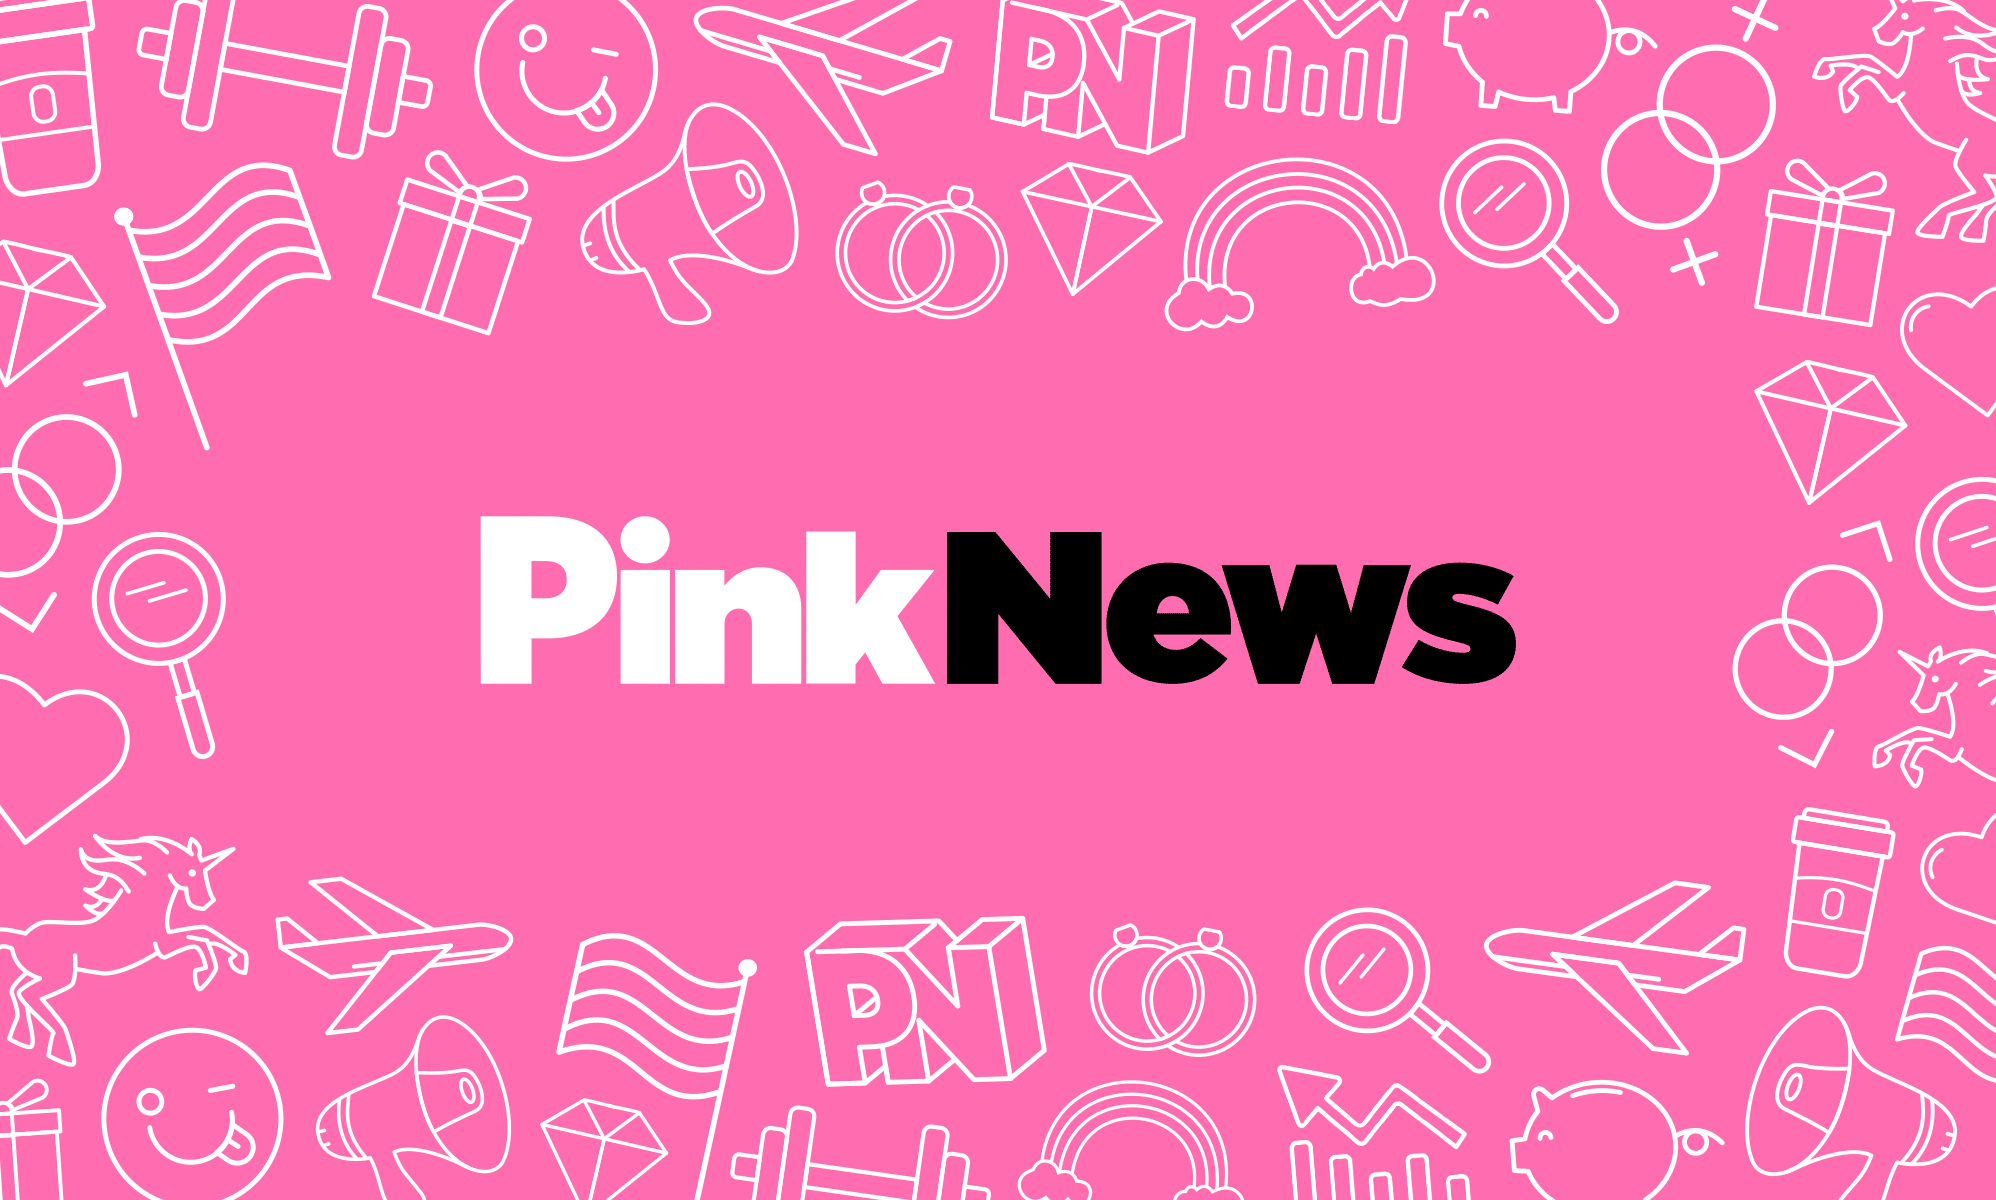 The top 10 most bizarre PinkNews stories of 2014